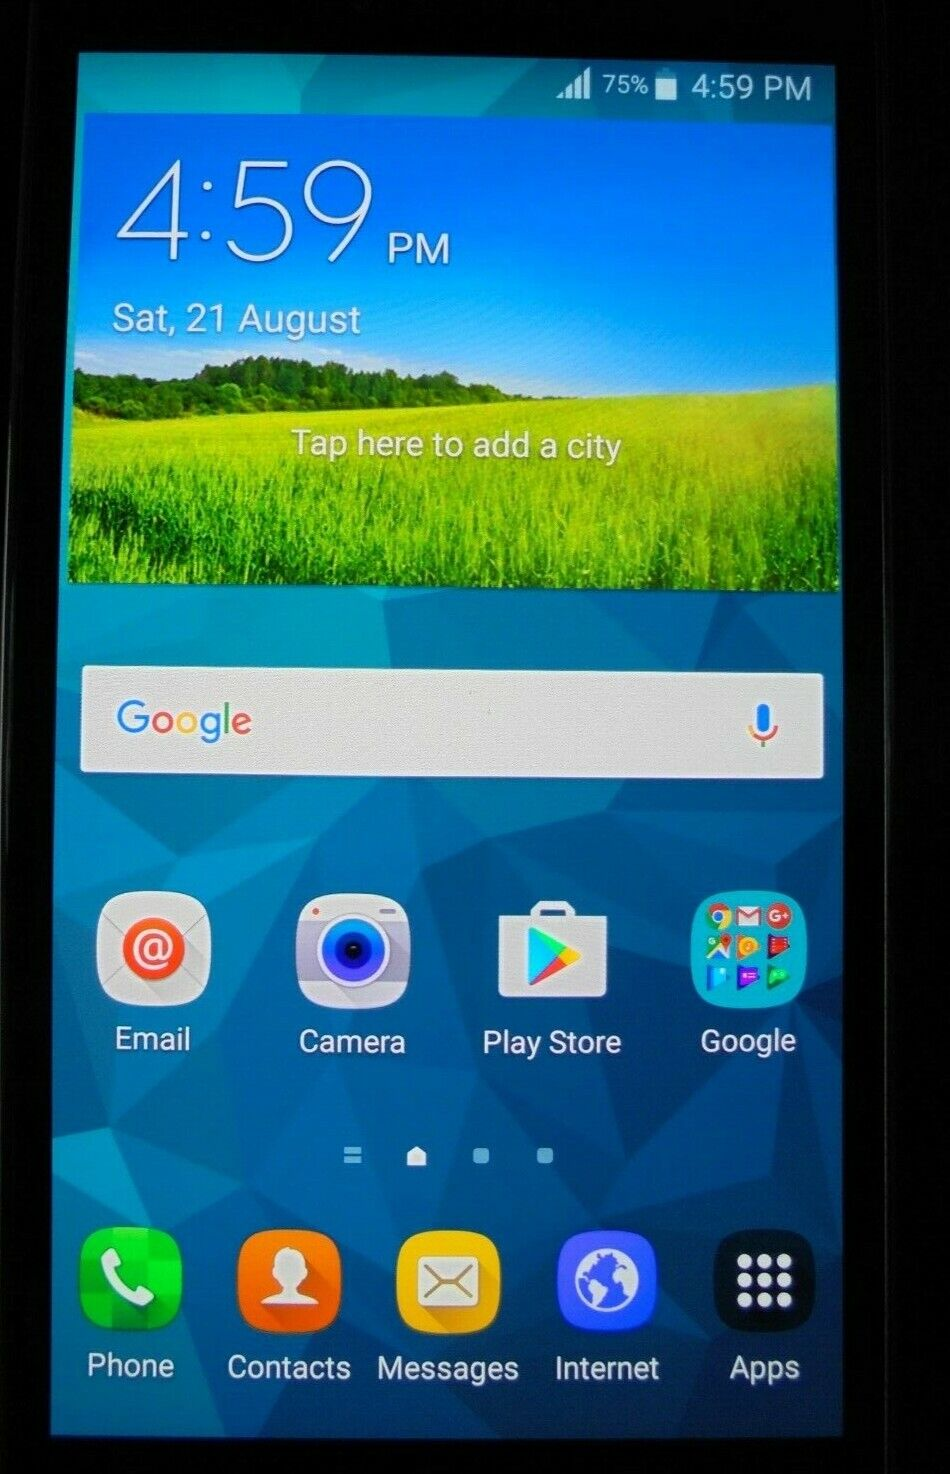 Android Phone - Samsung Galaxy S5 - SM-G900I - 16GB - 4G - Black - Unlocked Excellent condition